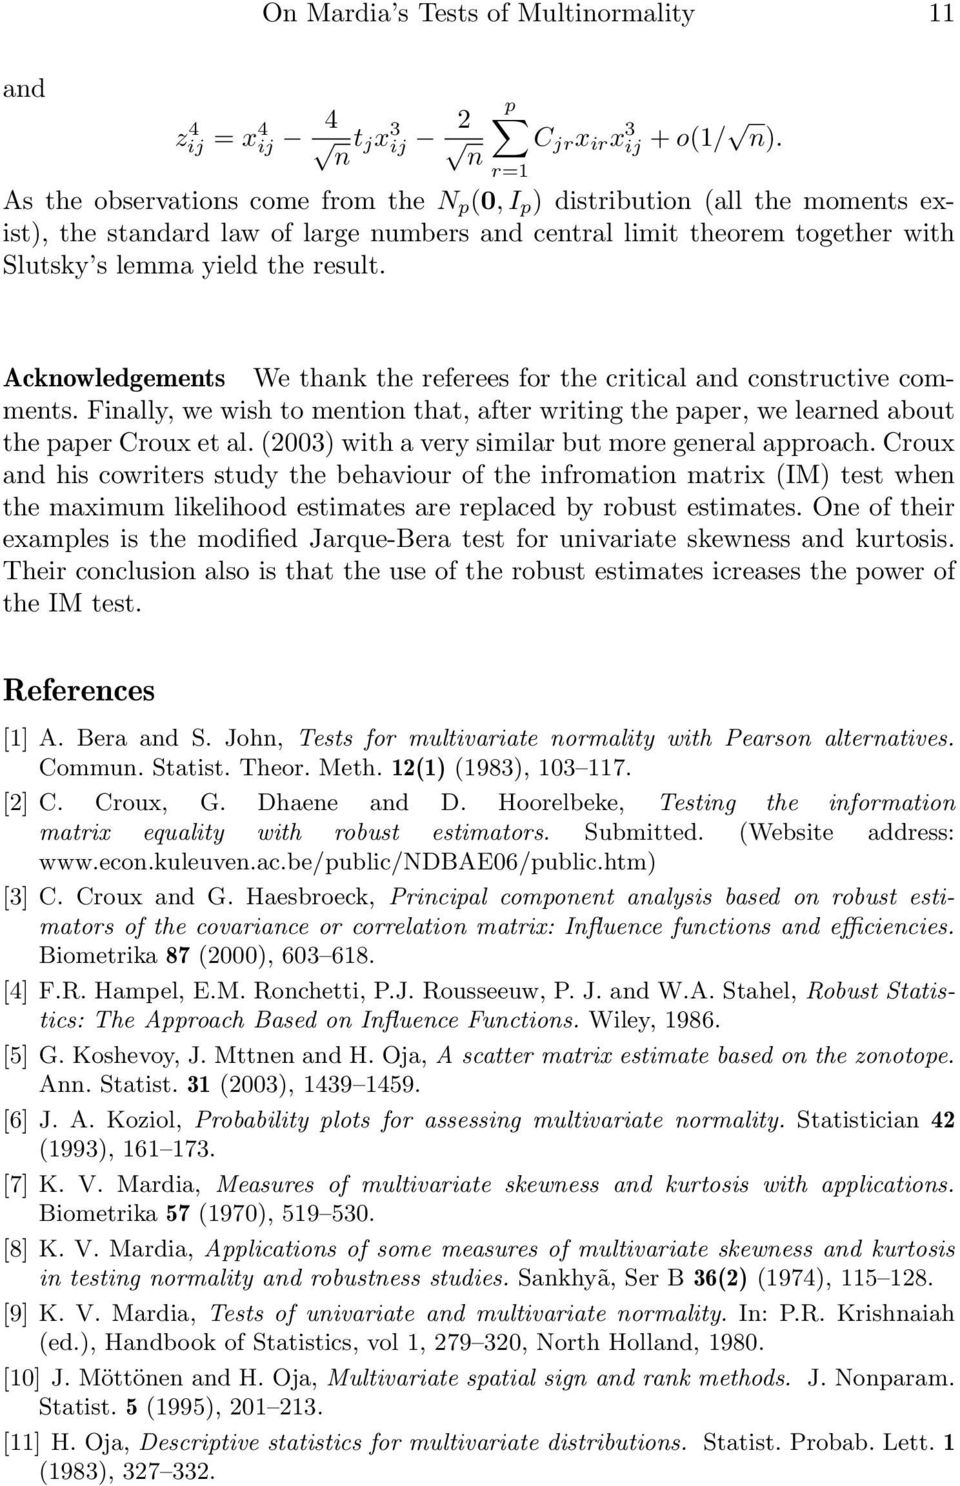 r=1 Acknowledgements We thank the referees for the critical constructive comments. Finally, we wish to mention that, after writing the paper, we learned about the paper Croux et al.